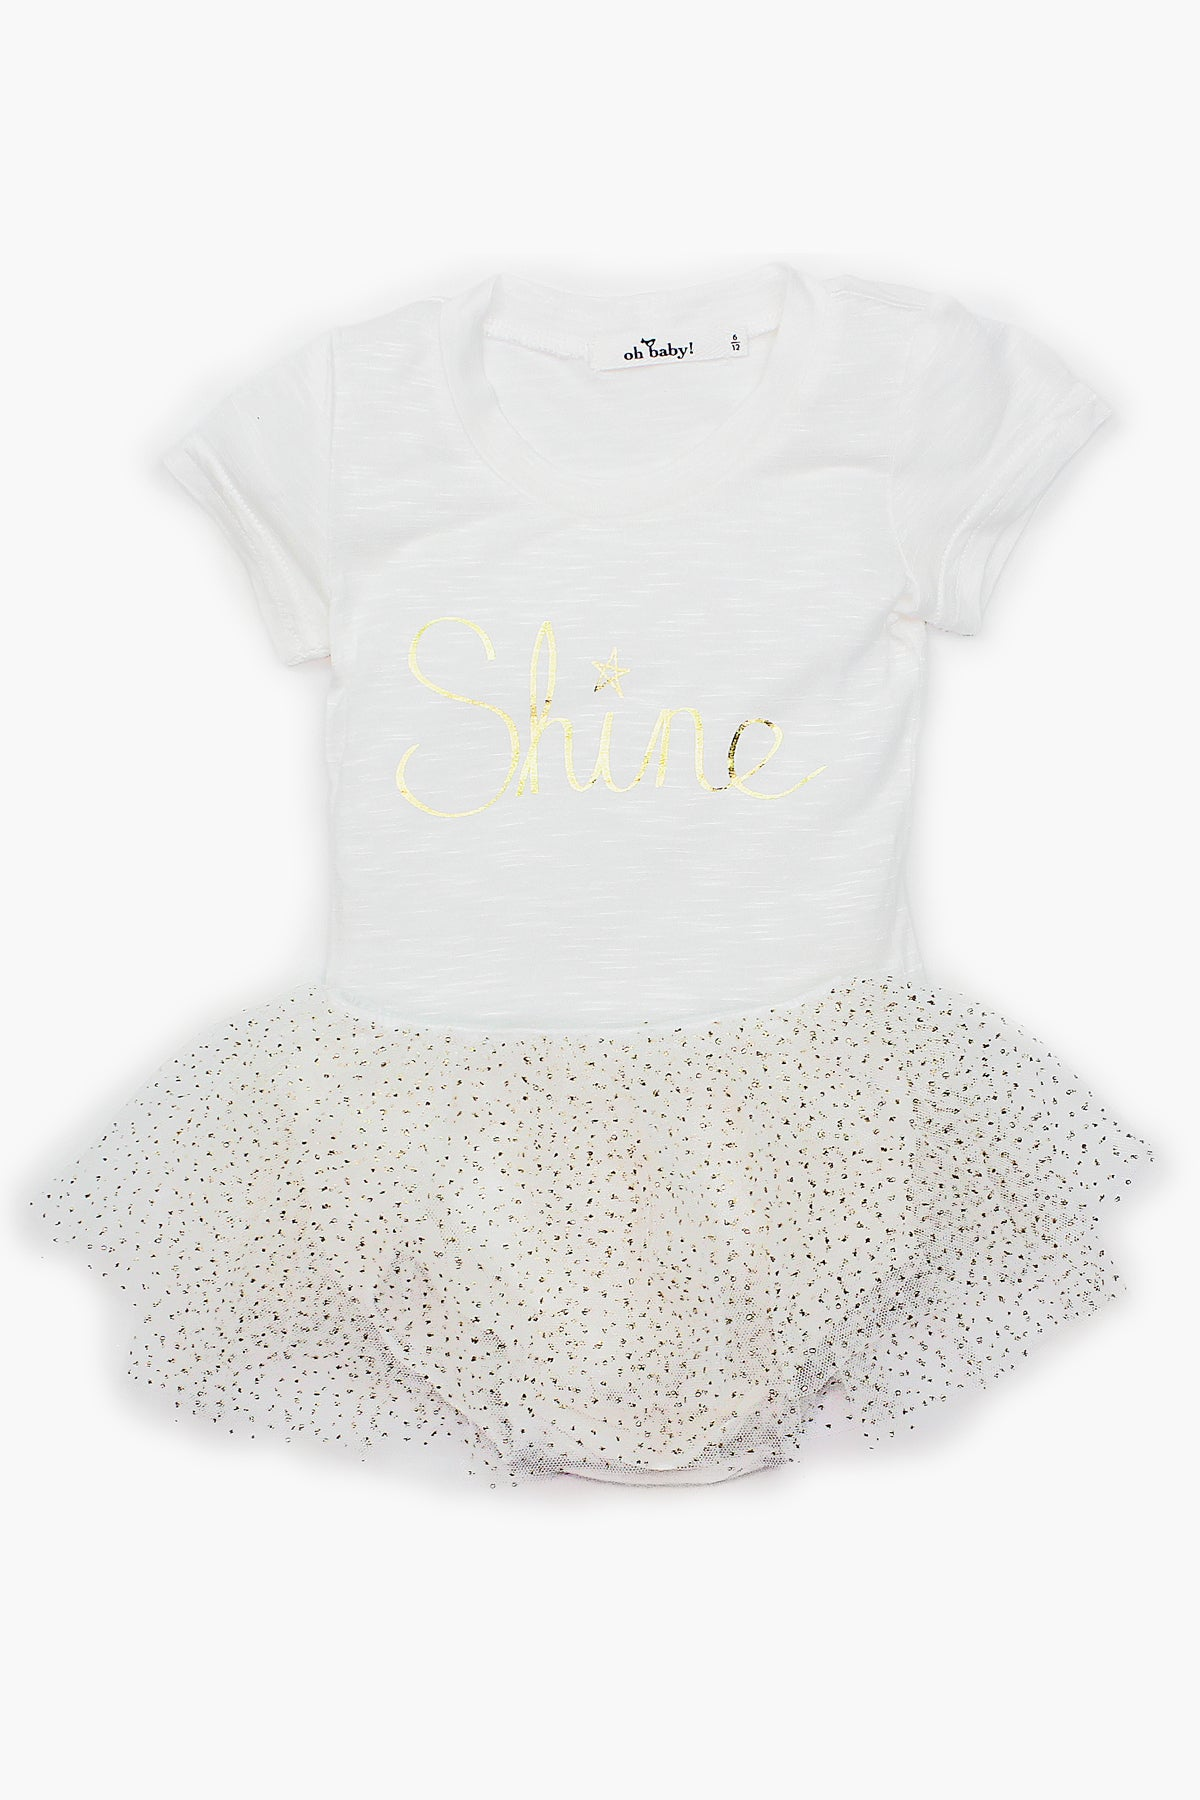 Oh Baby! Shine Tutu Set